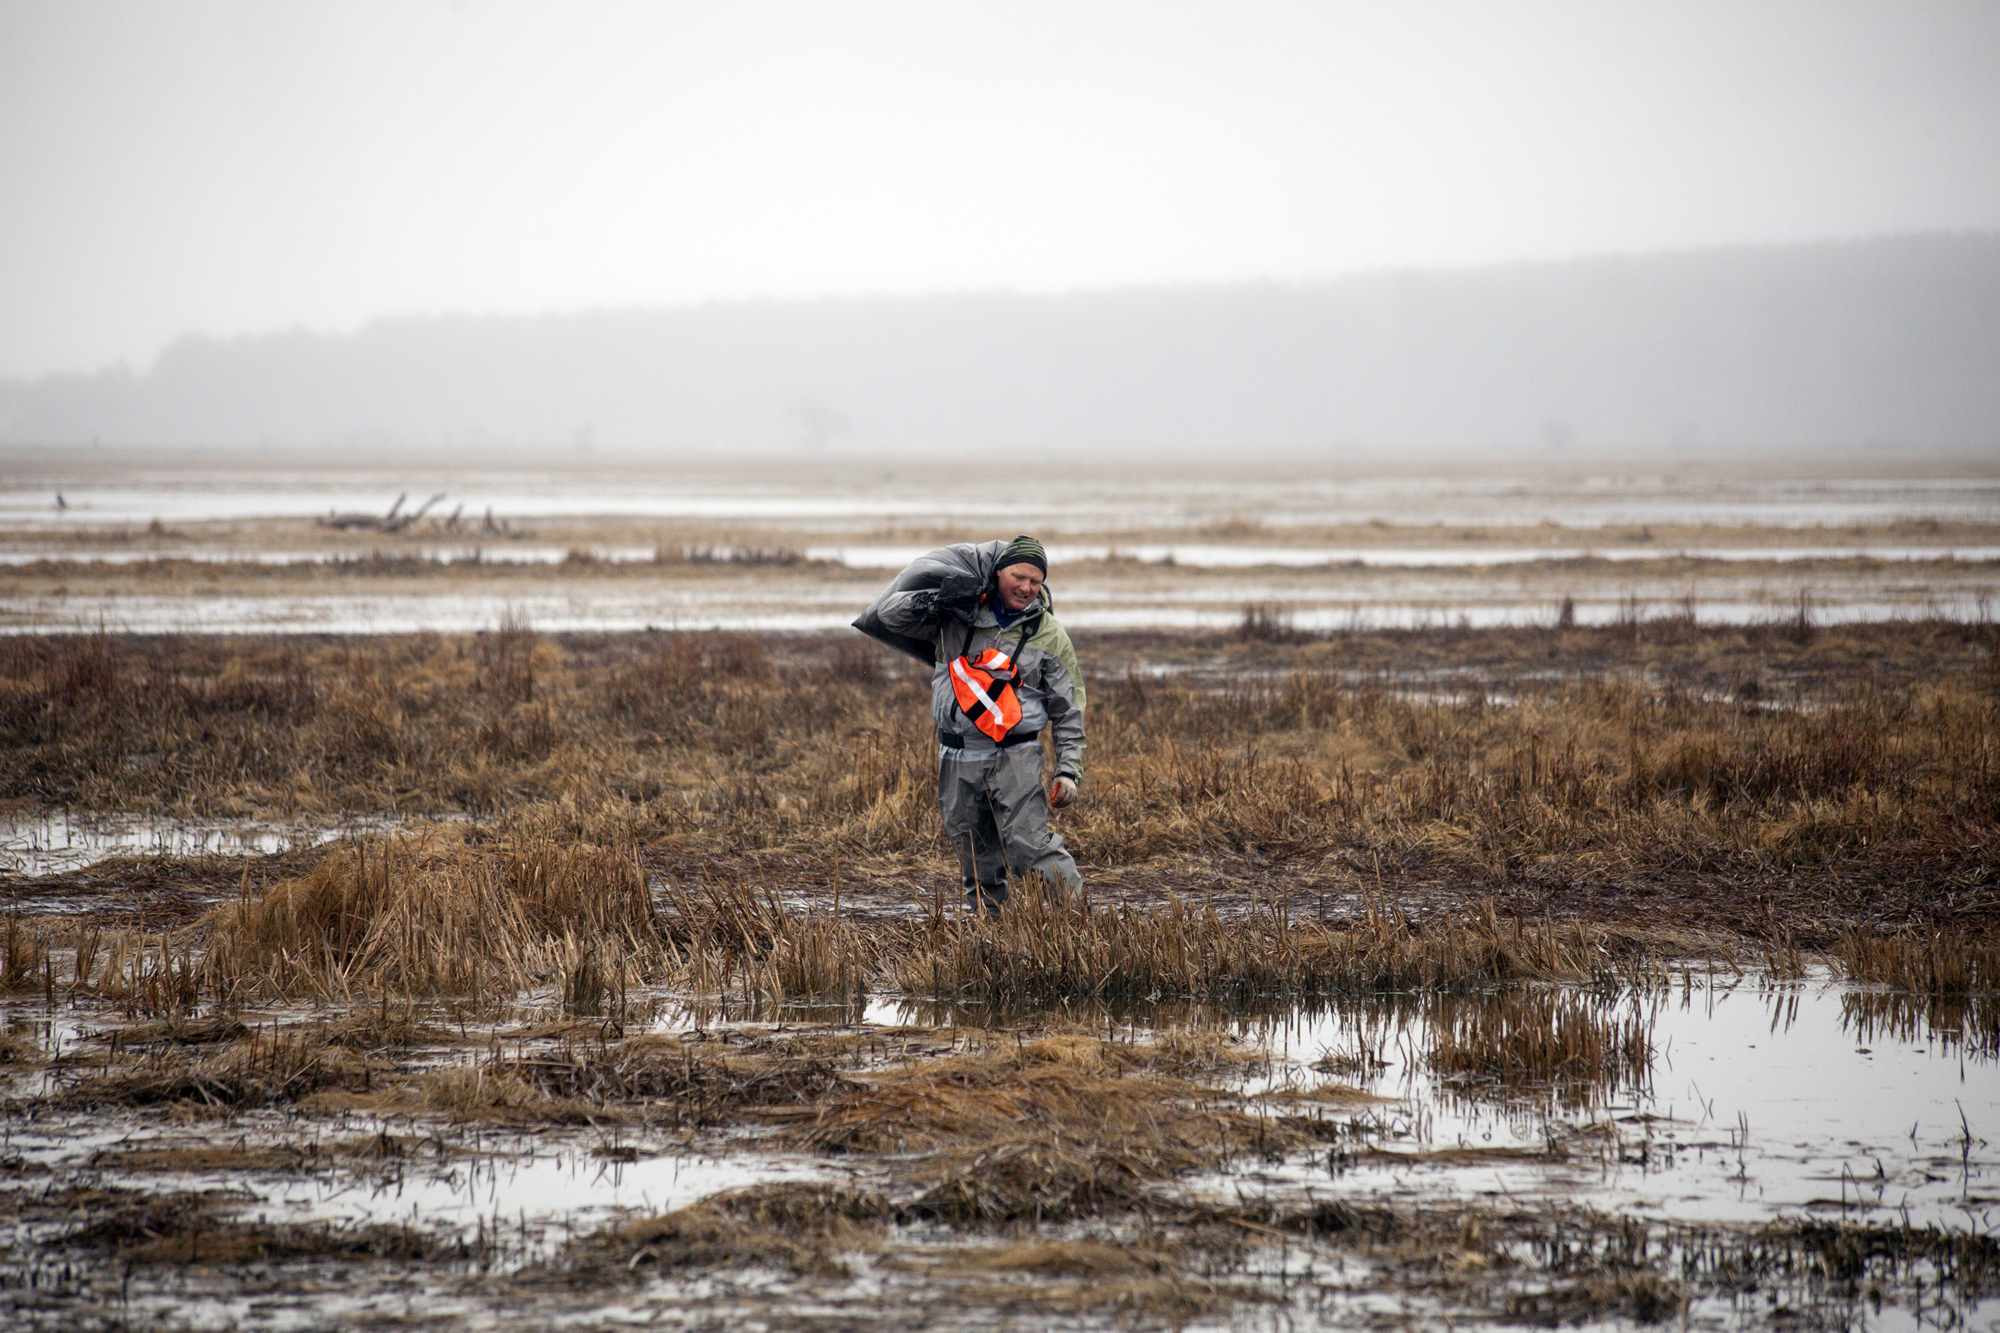 More than 60 volunteers helped cleanup Scarborough Marsh during the annual Earth Day Cleanup in Scarborough, Maine on April 22.